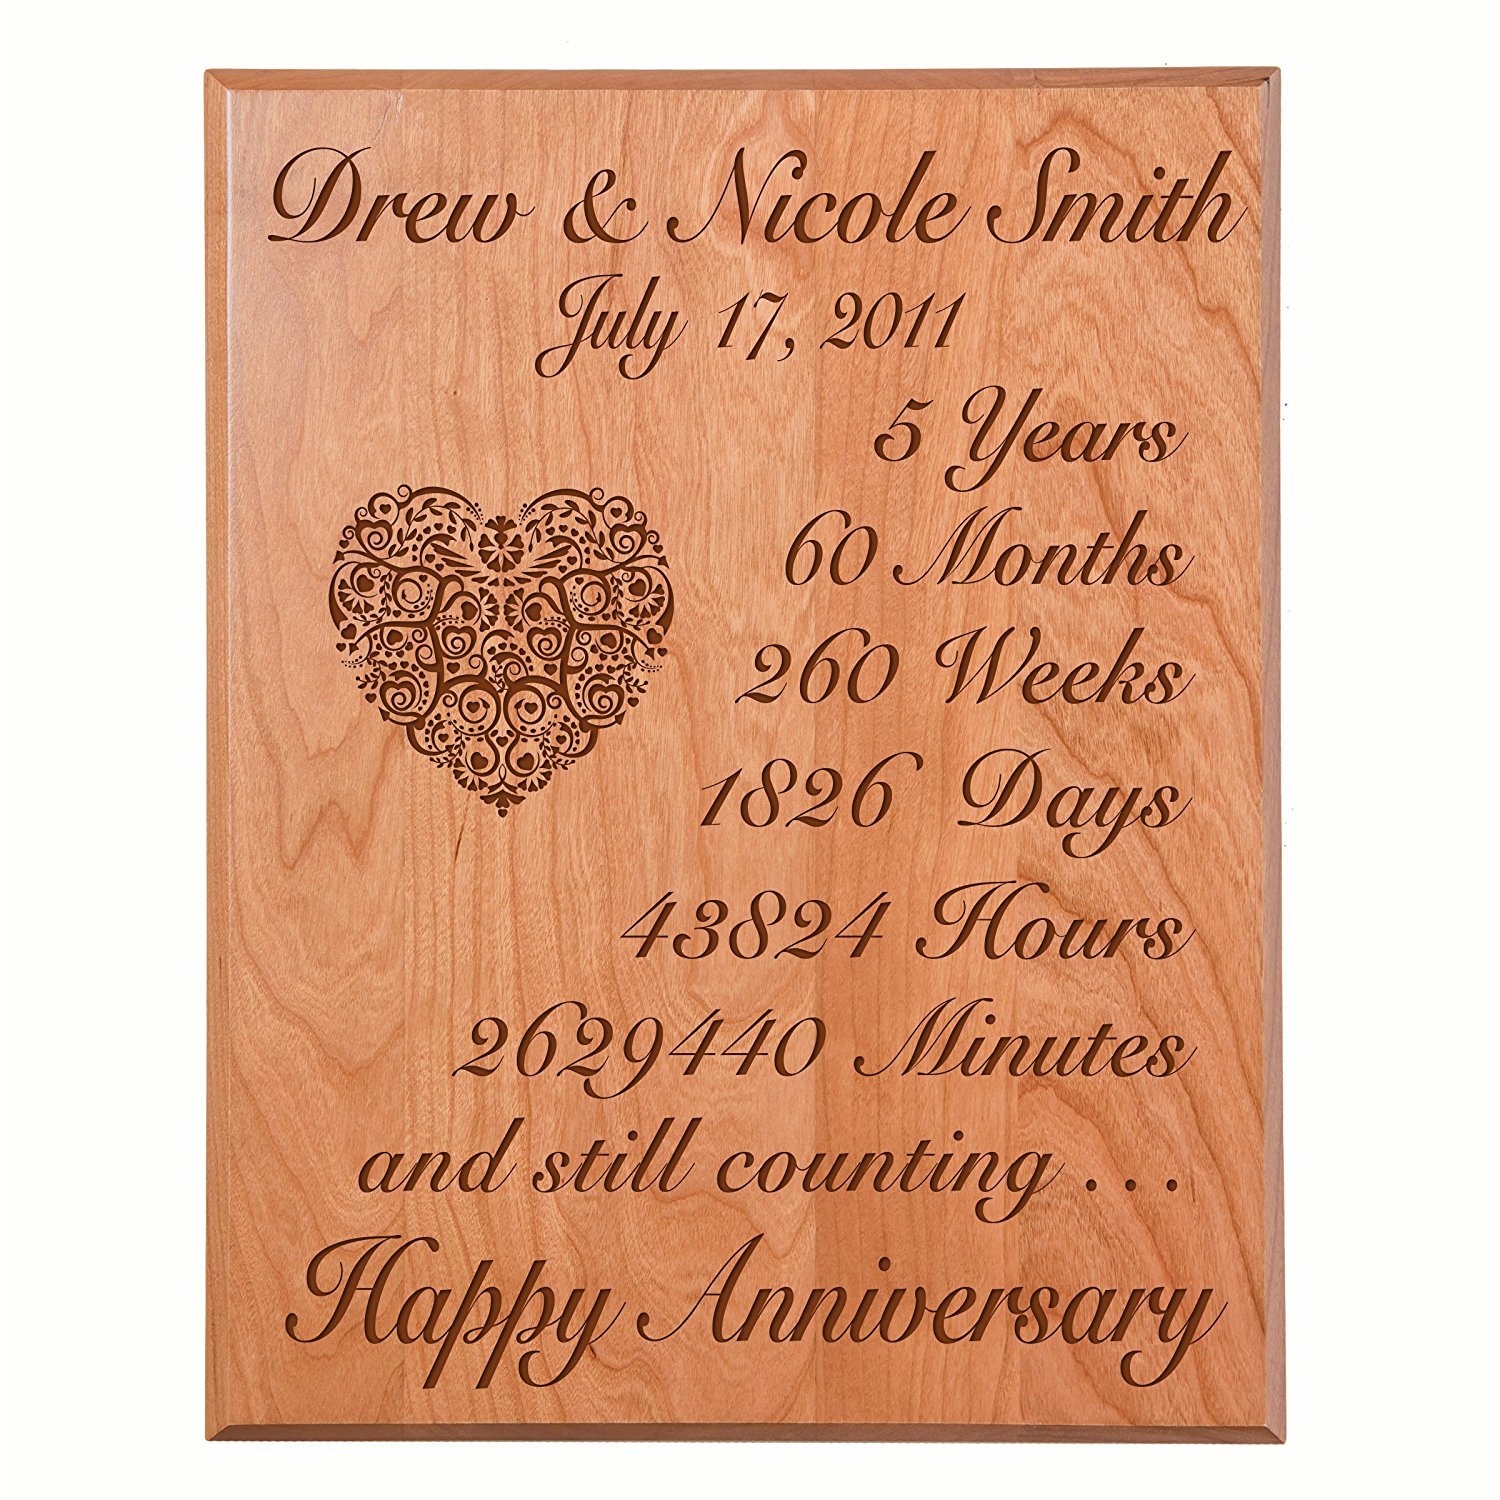 Personalized 5th Wedding Anniversary Wall Plaque Gifts for Couple Custom Made 5 year Anniversary gift ideas for Her,5th year Wedding Anniversary for Him By Dayspring Milestone (Solid Cherry Wood)